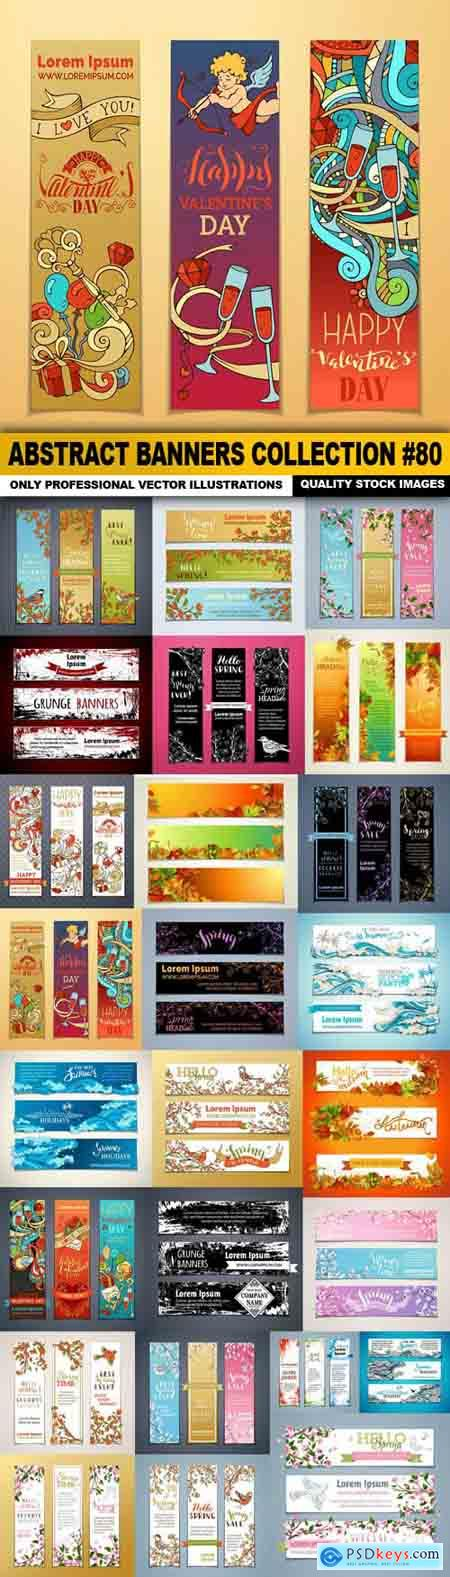 Abstract Banners Collection #80 - 25 Vectors